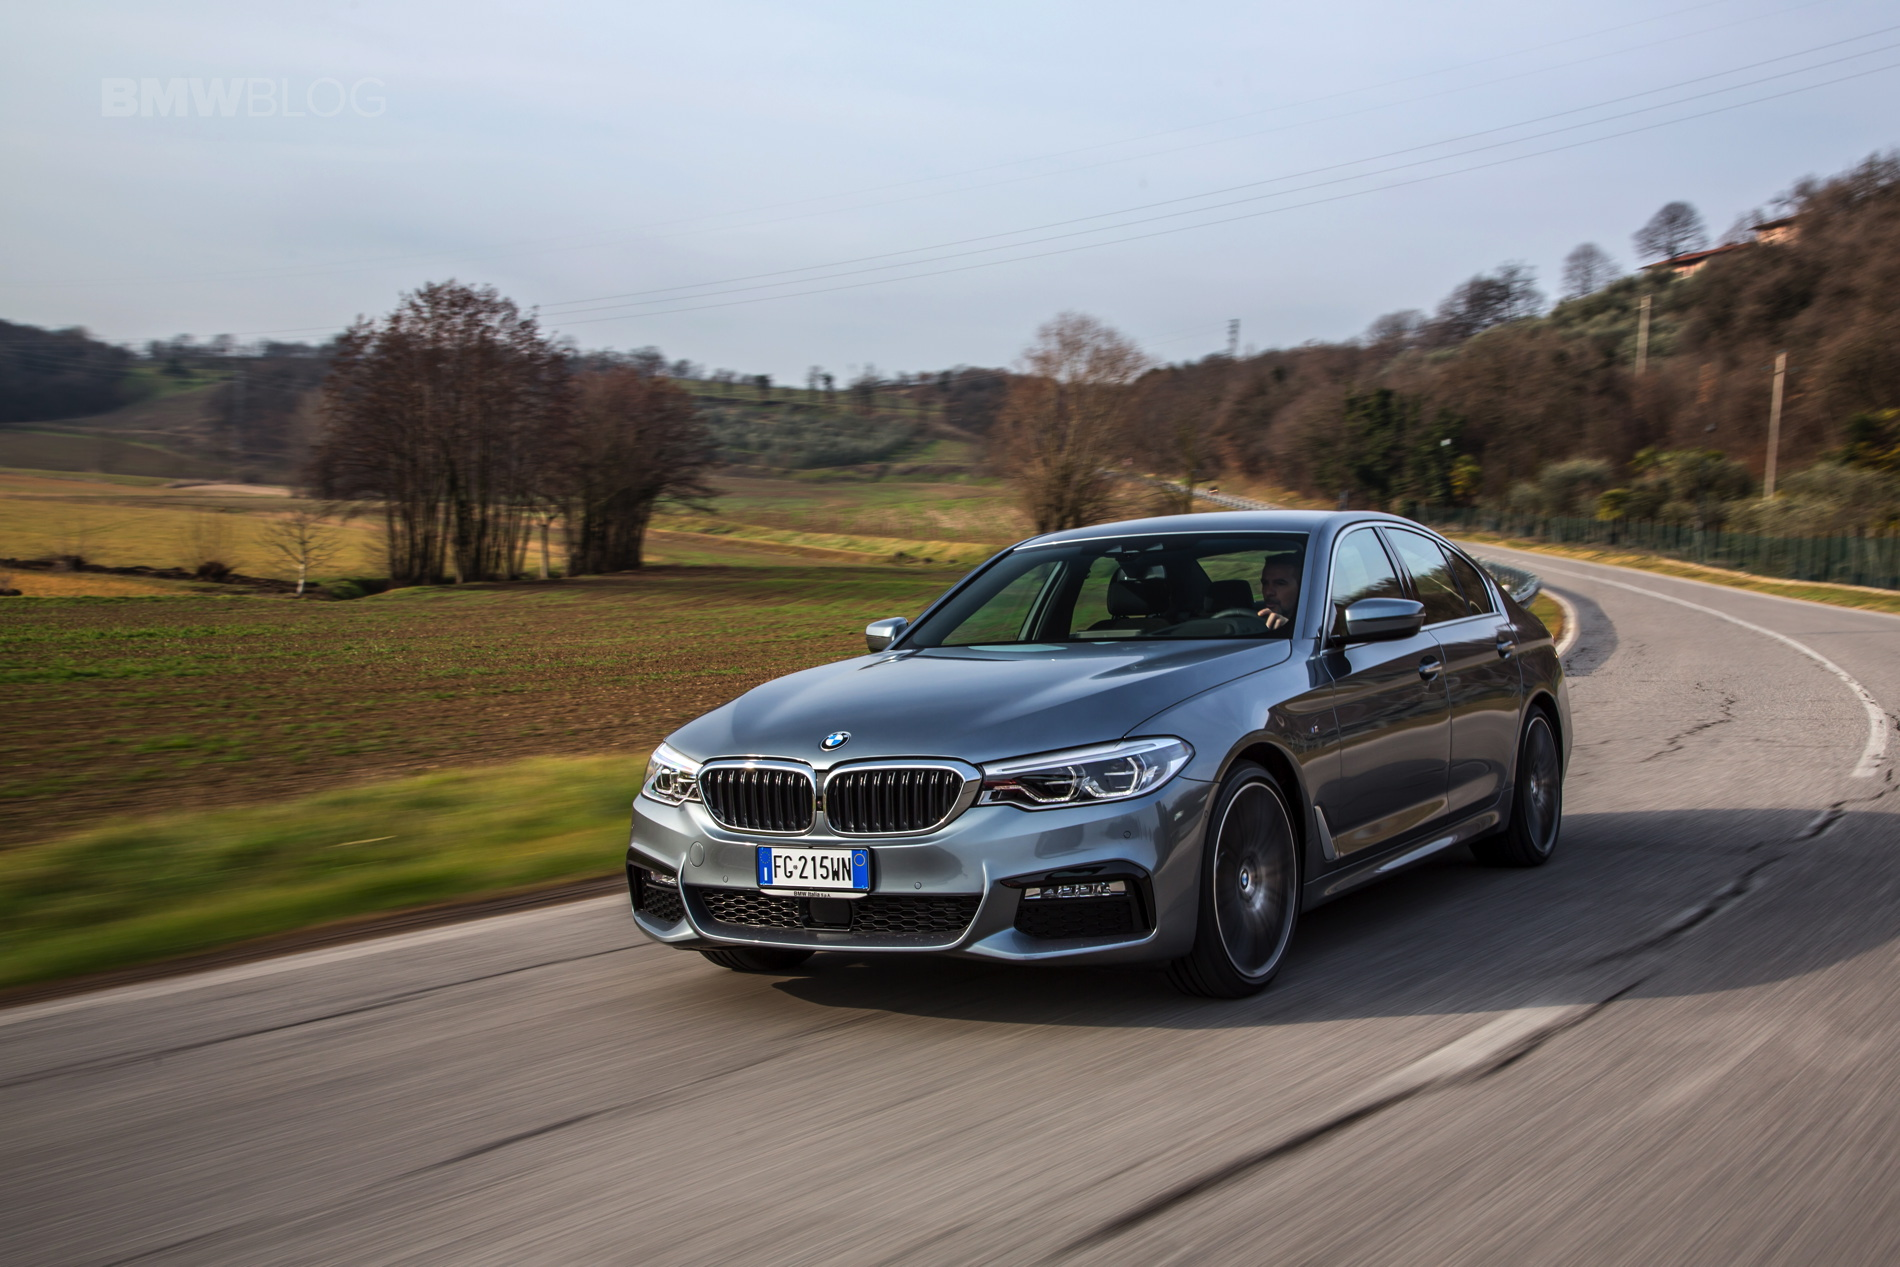 2017 BMW 5 Series Italy 01